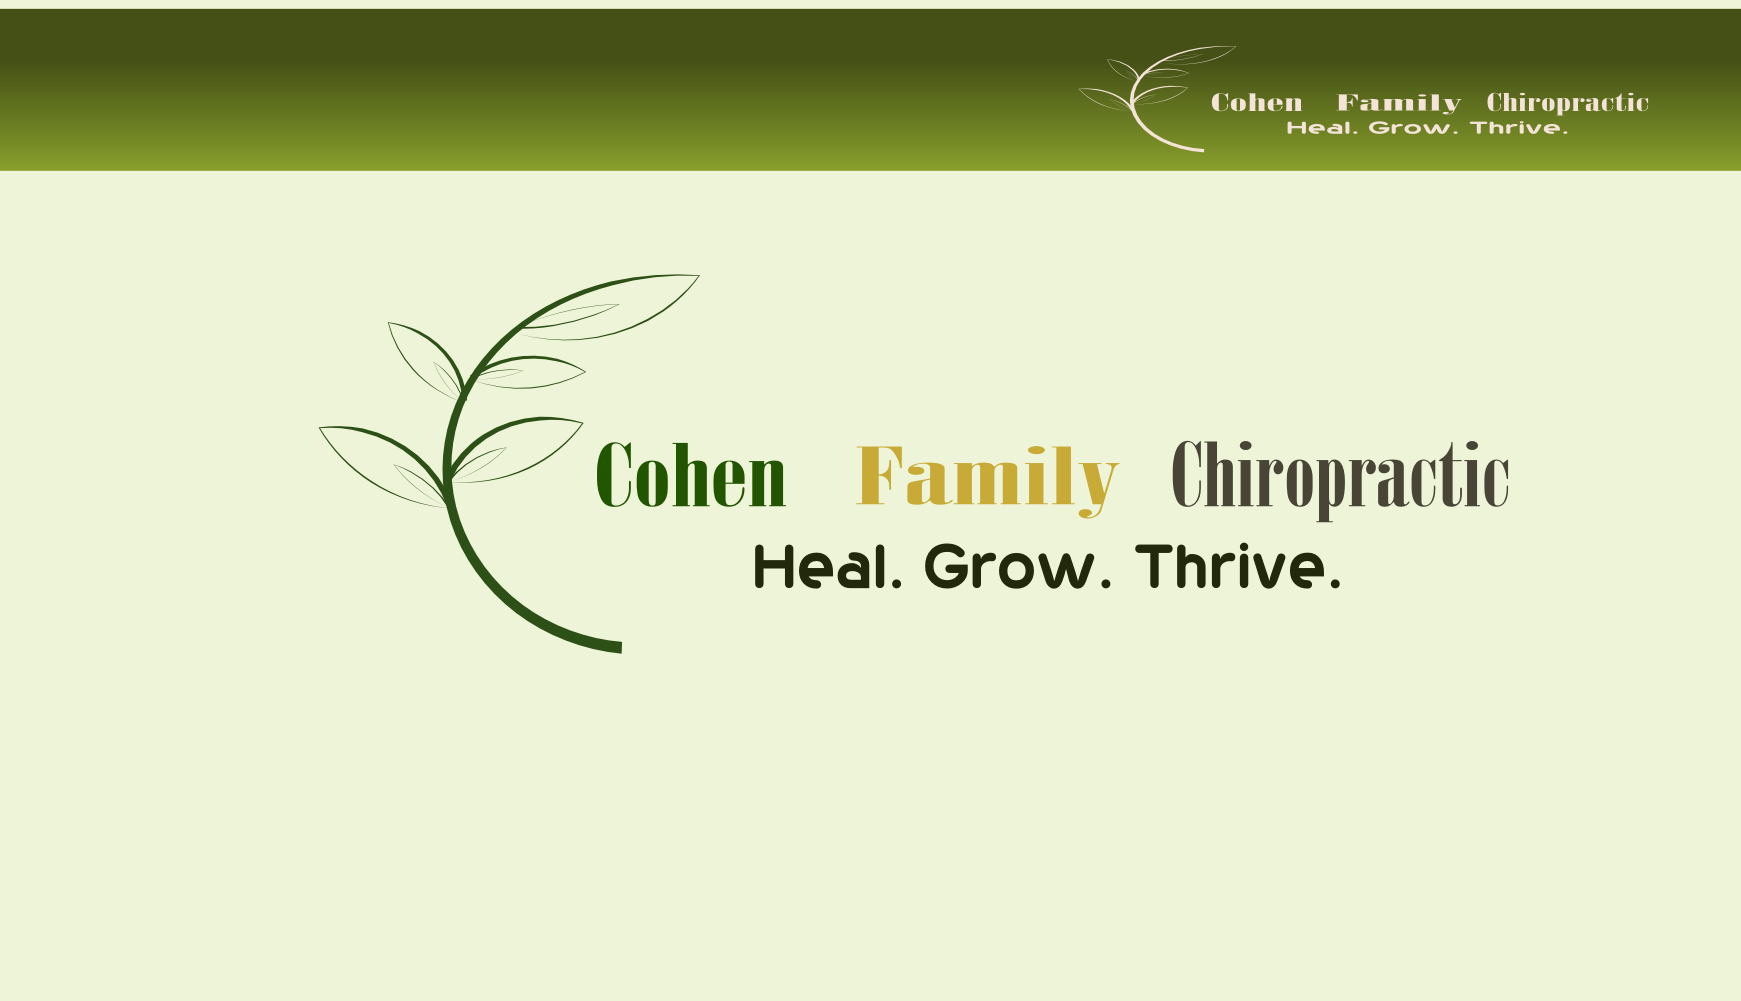 Logo Design by Arindam Khanda - Entry No. 47 in the Logo Design Contest Unique Logo Design Wanted for Cohen Family Chiropractic.